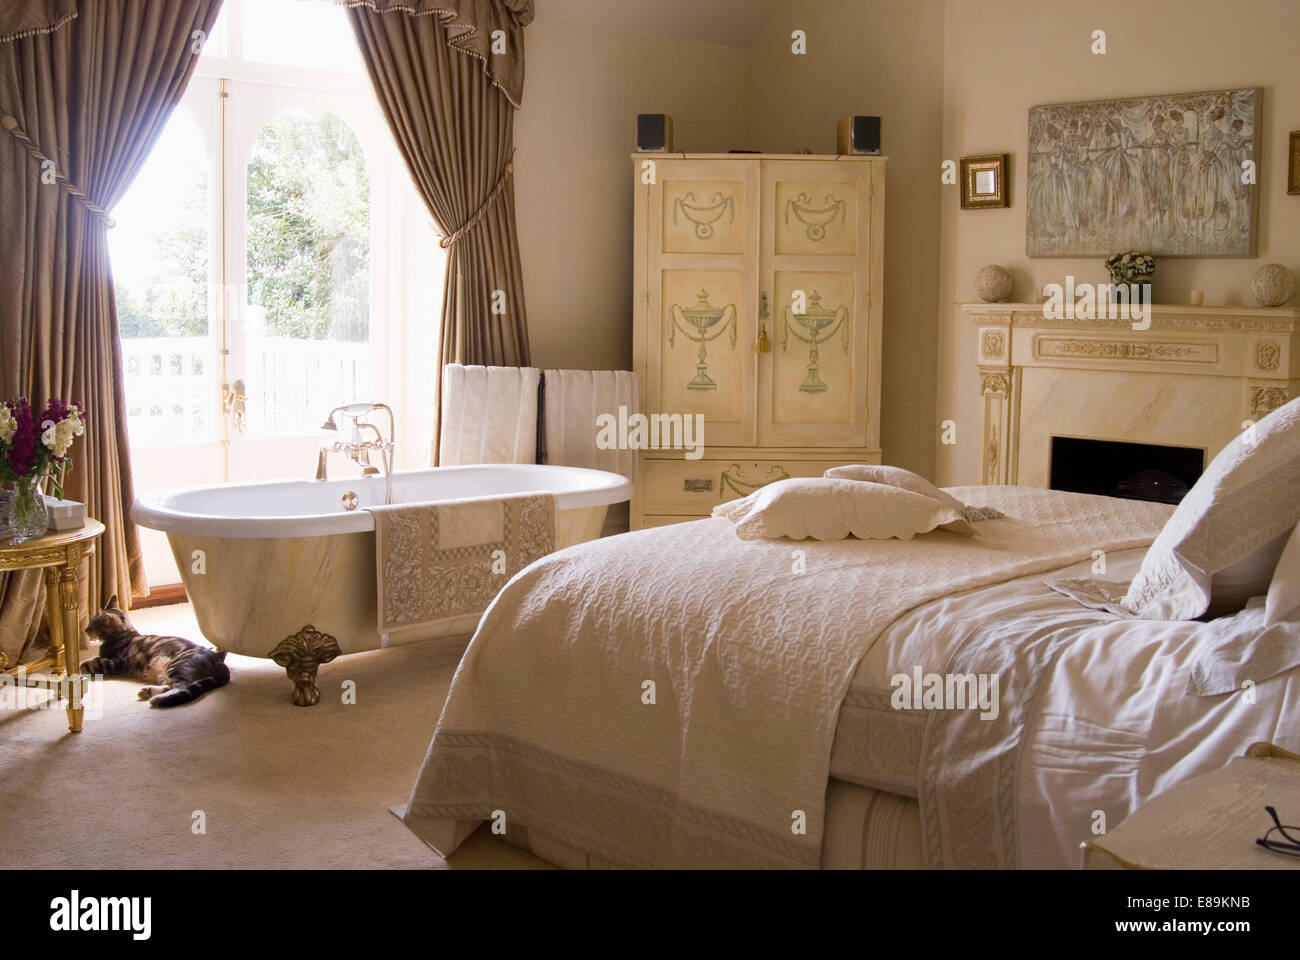 Rolltop bath in country bedroom with cream linen on bed and painted